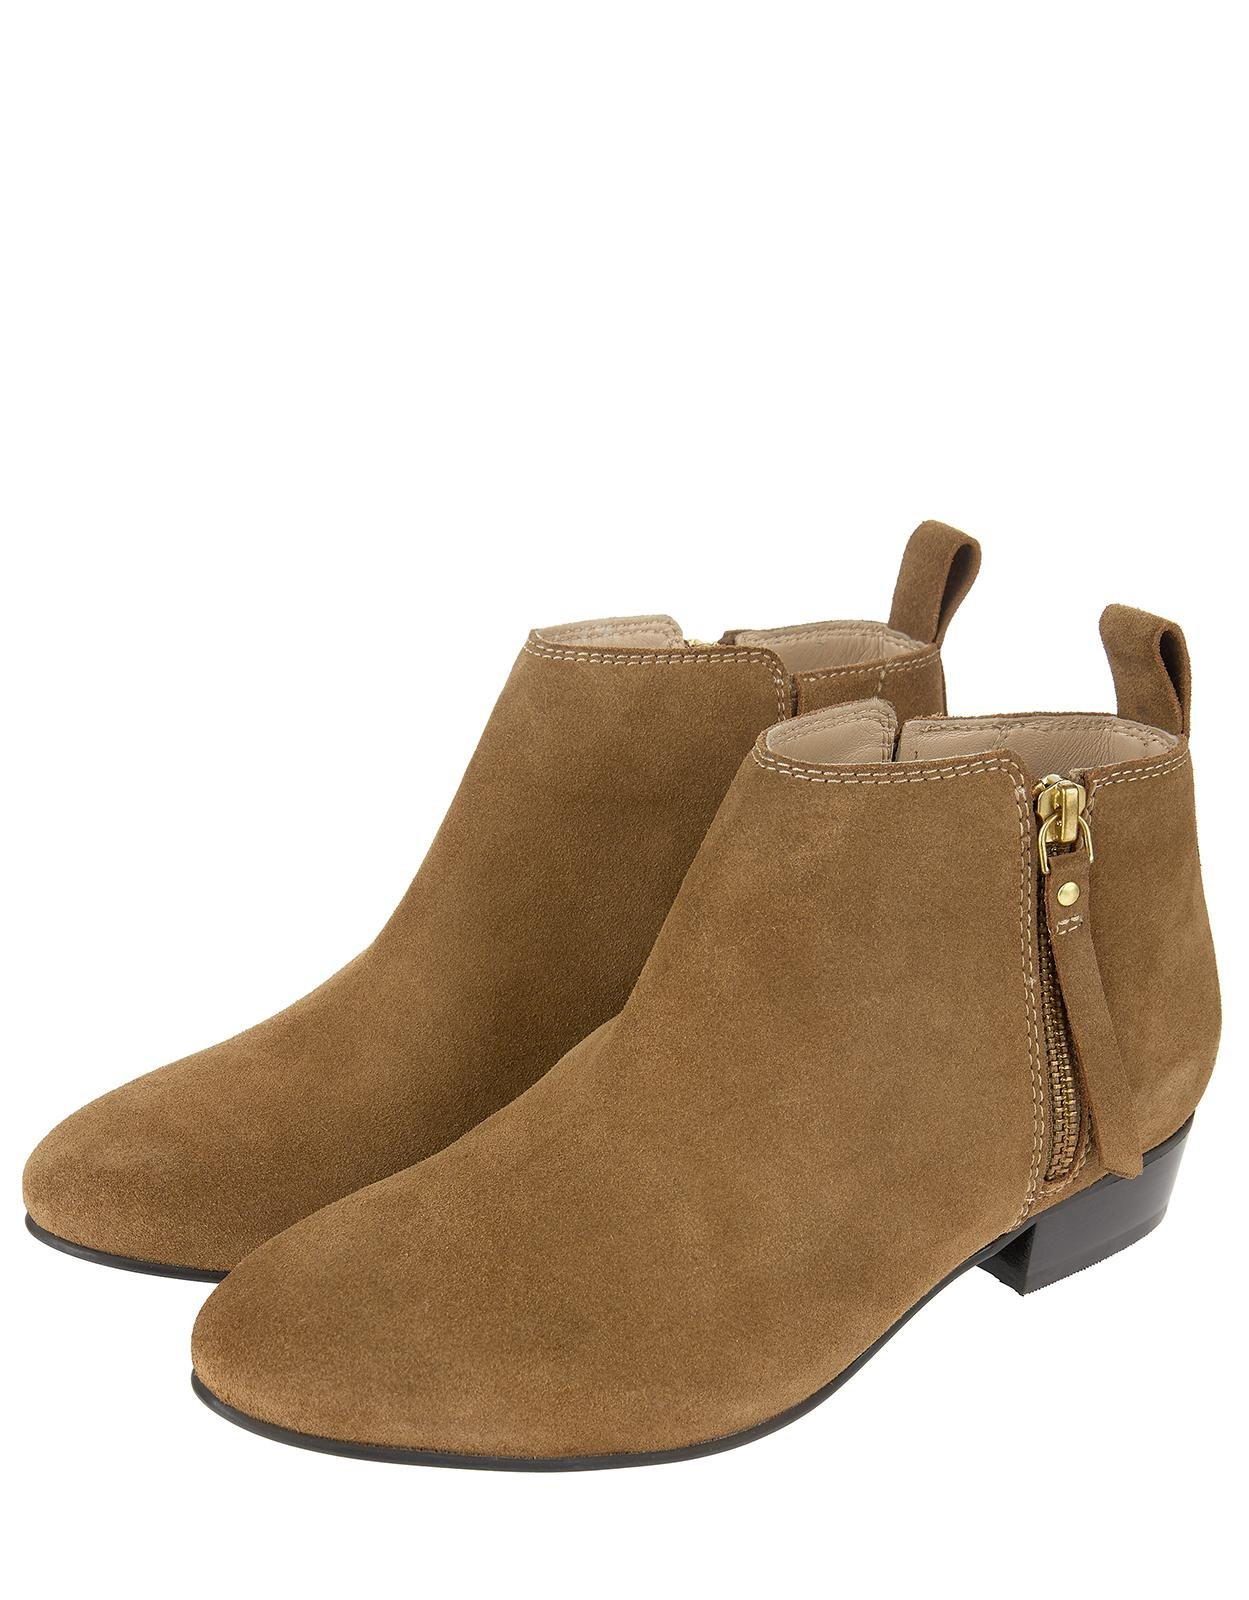 bb51e755cc25 Monsoon Lacey Low Cut Zip Suede Ankle Boots in Natural - Lyst